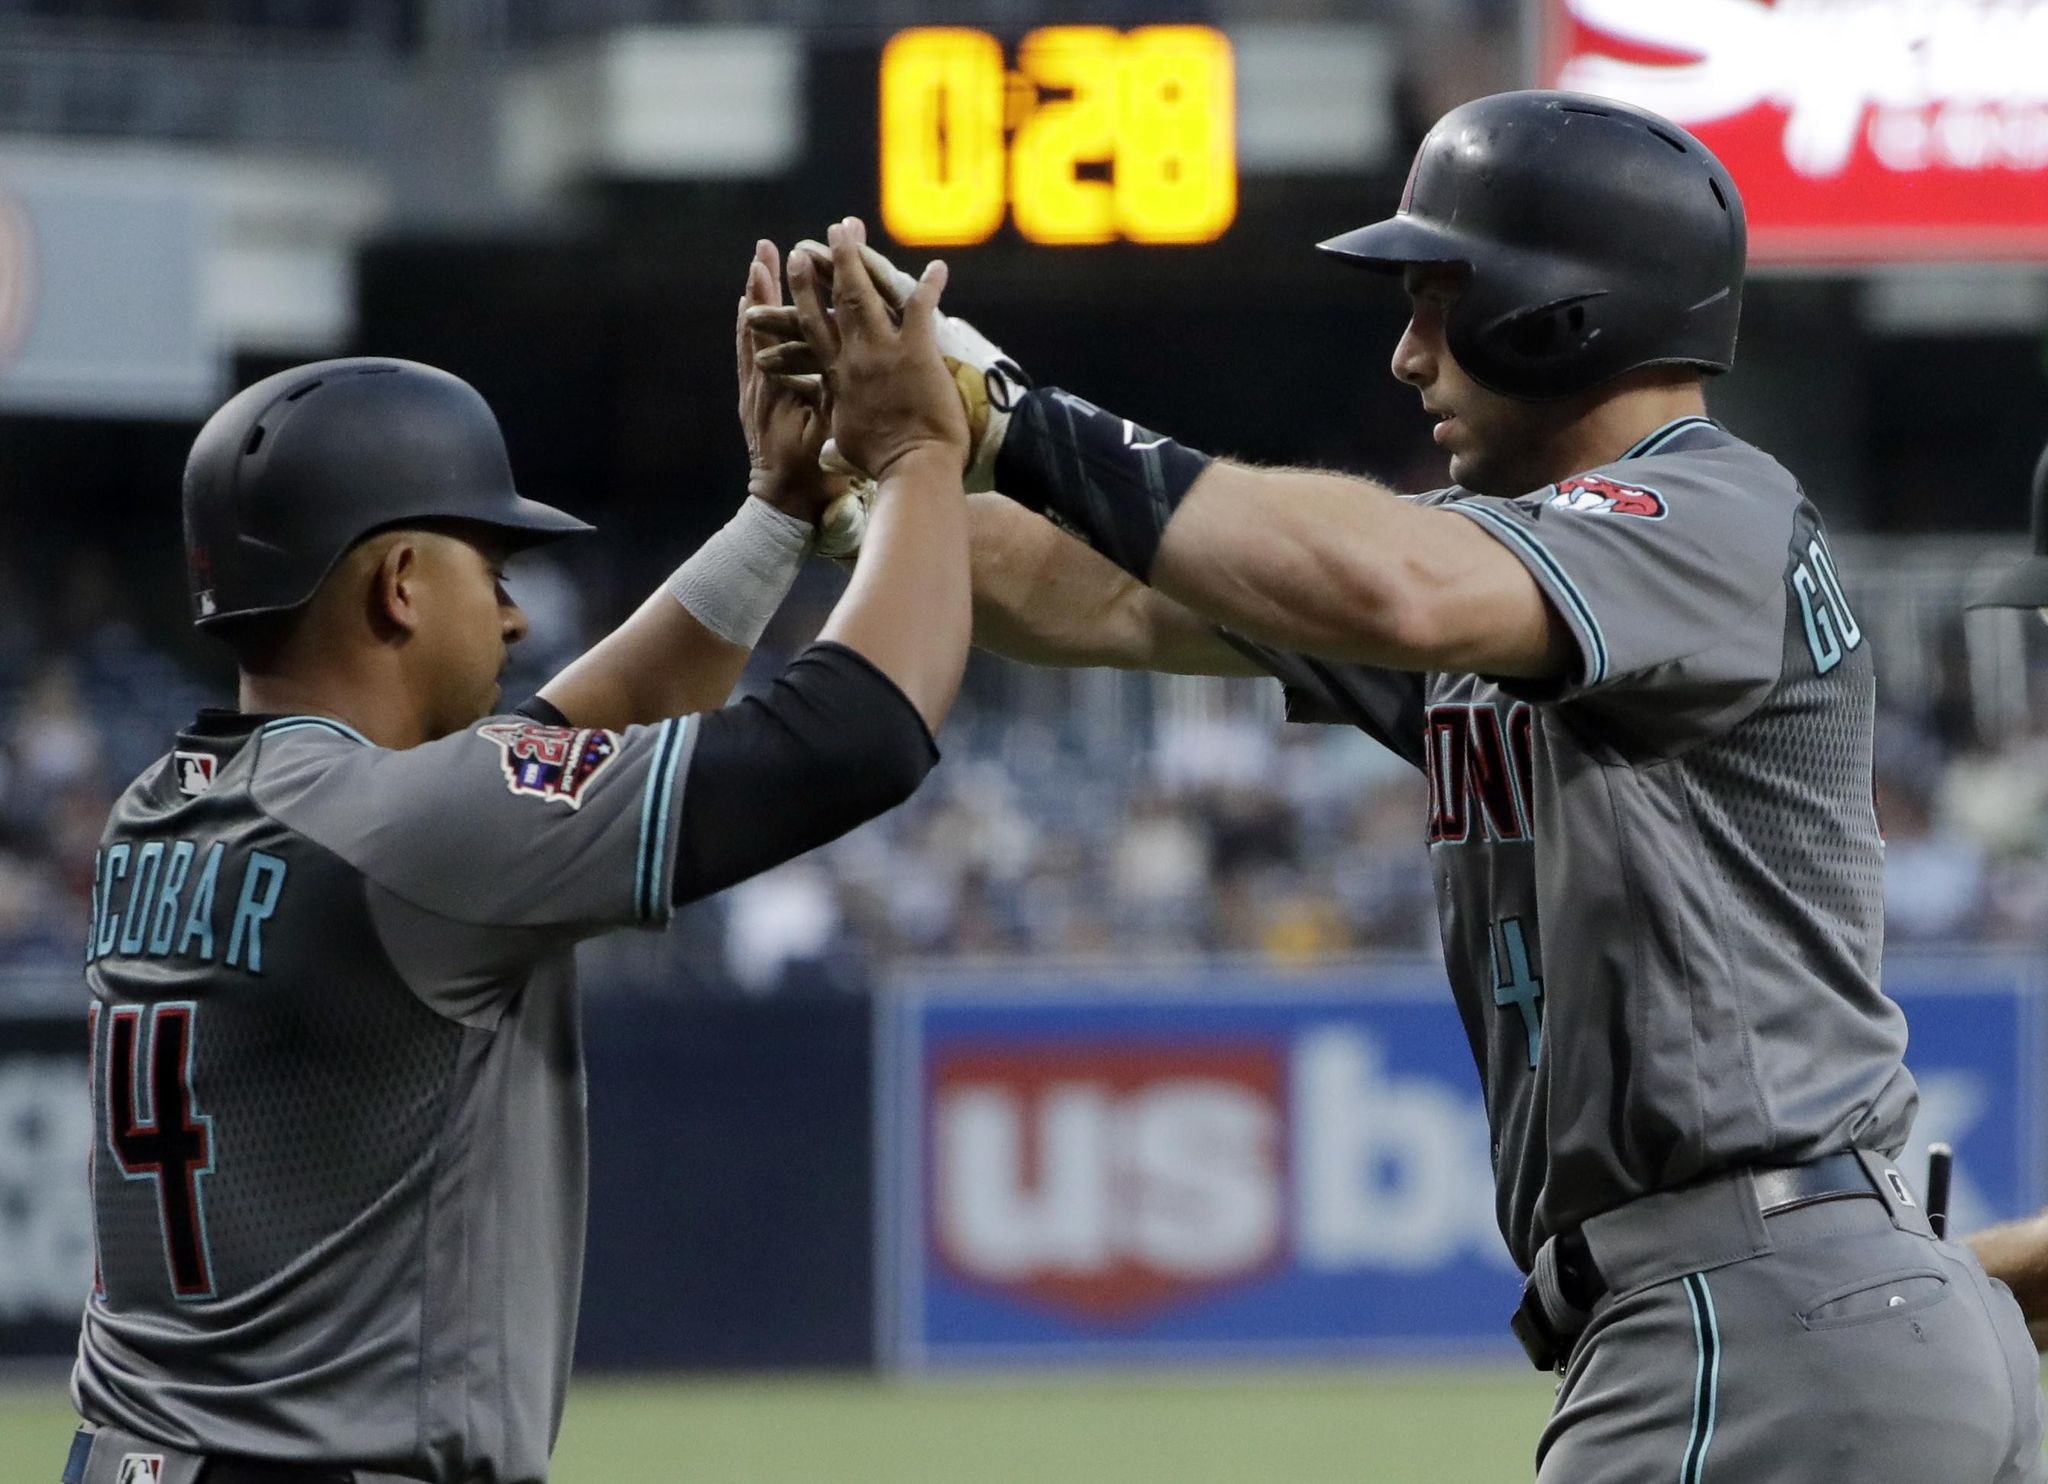 Diamondbacks_padres_baseball_71058_s2048x1484